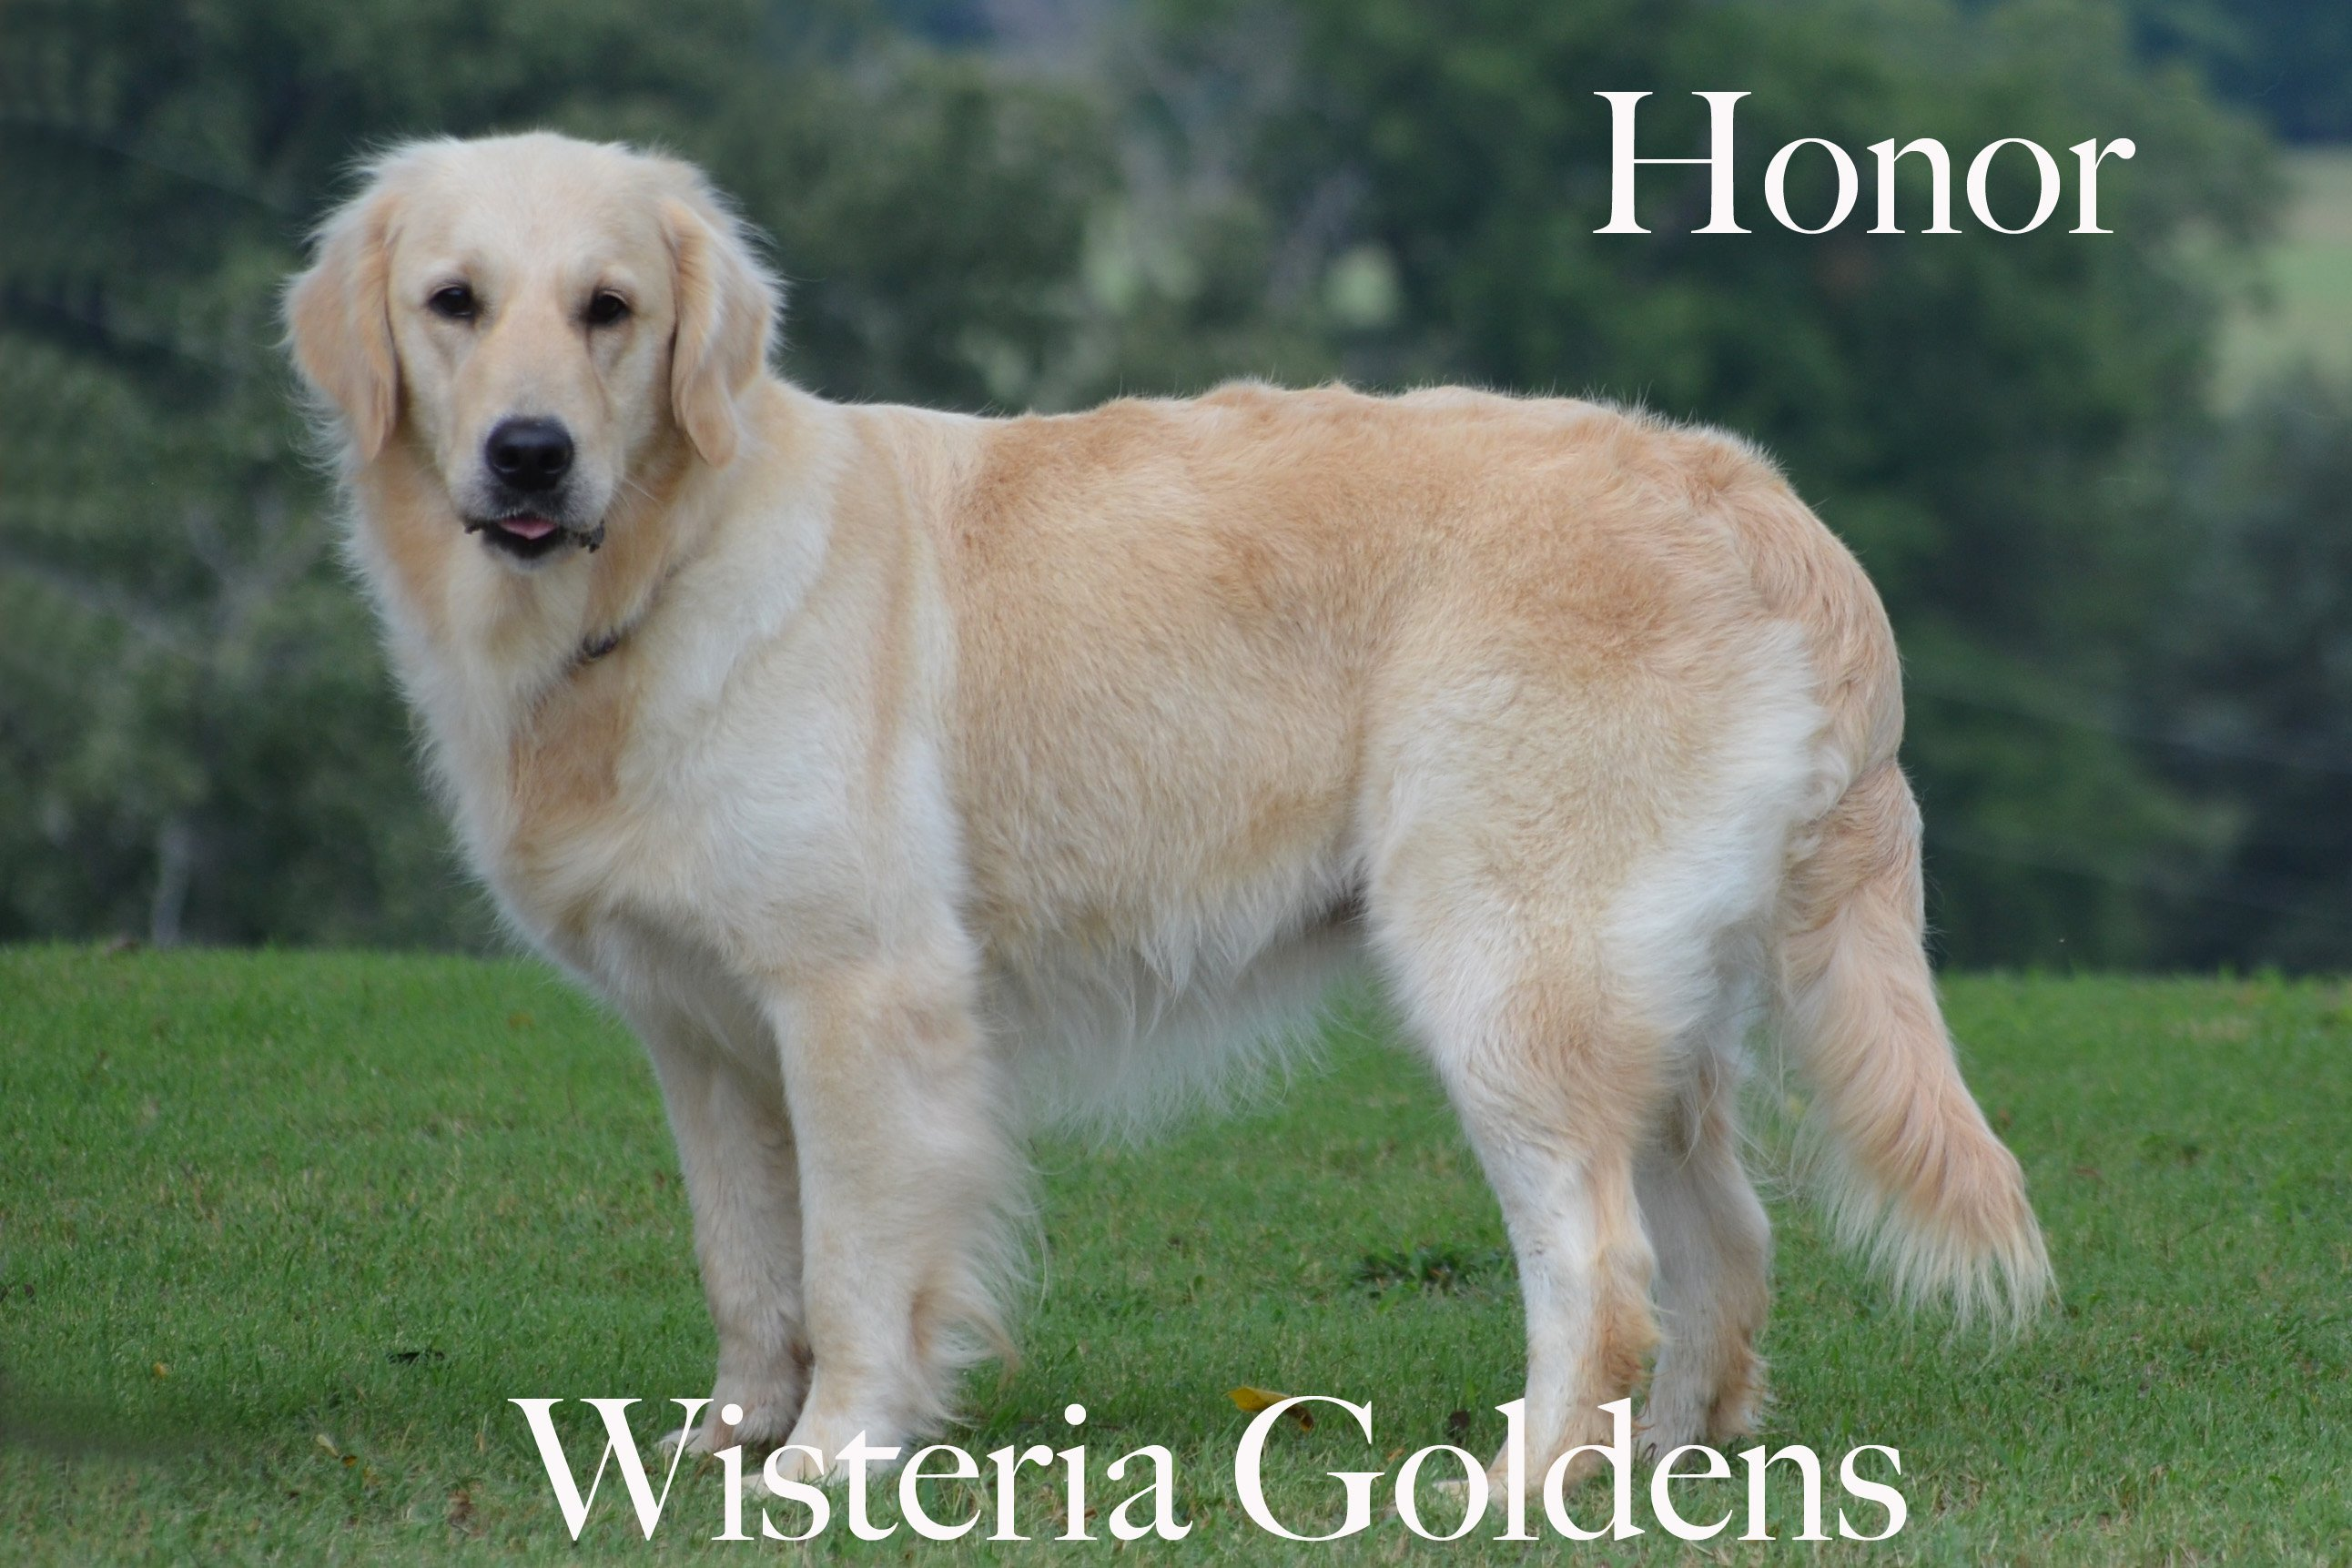 Honor_0164-full-english-creme-golden-retriever-wisteria-goldens